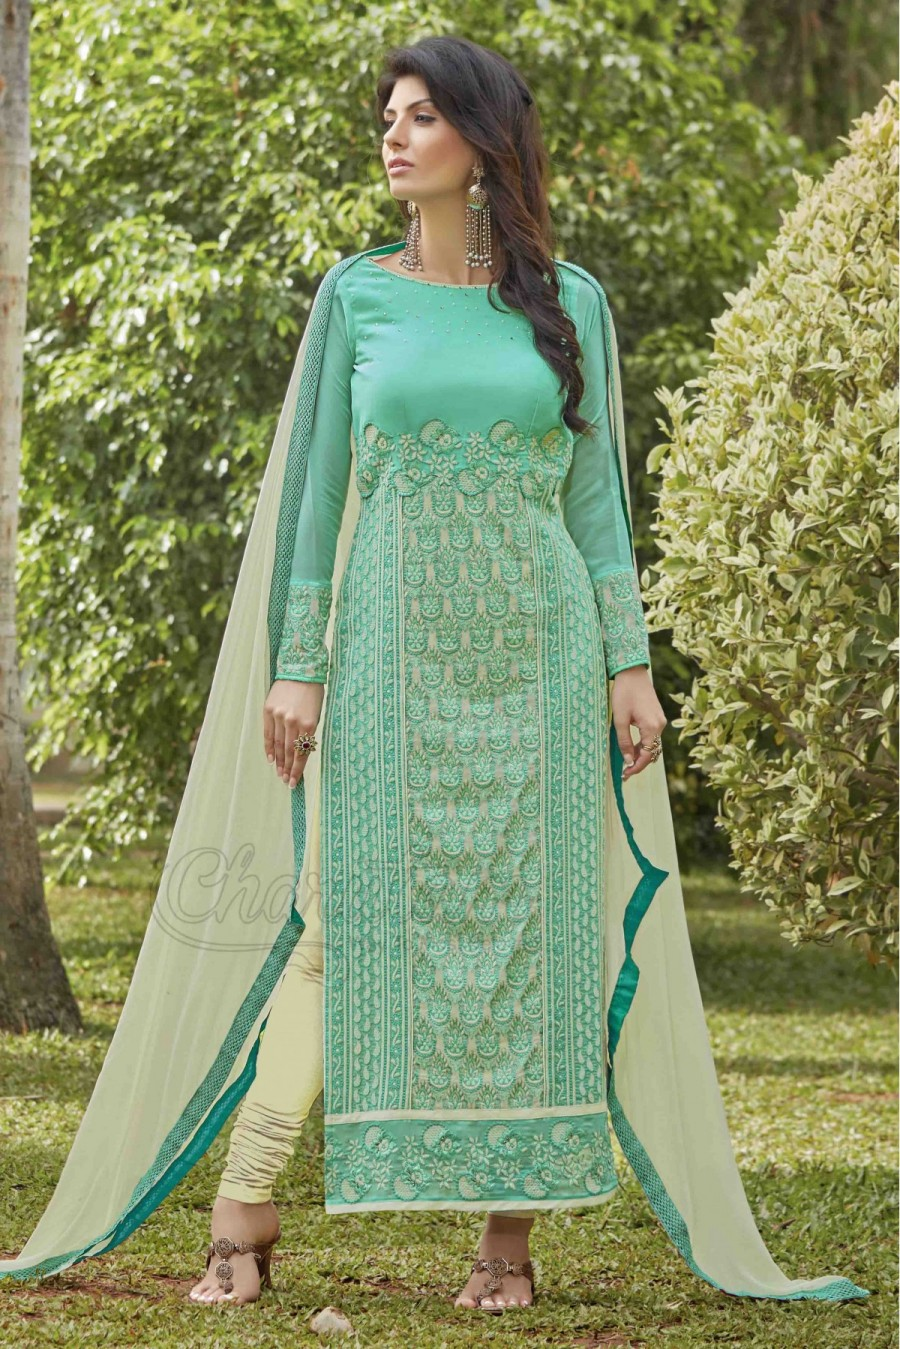 a77865f941 Get Georgette Party Wear Straight Suit in Sea Green Colour at best ...